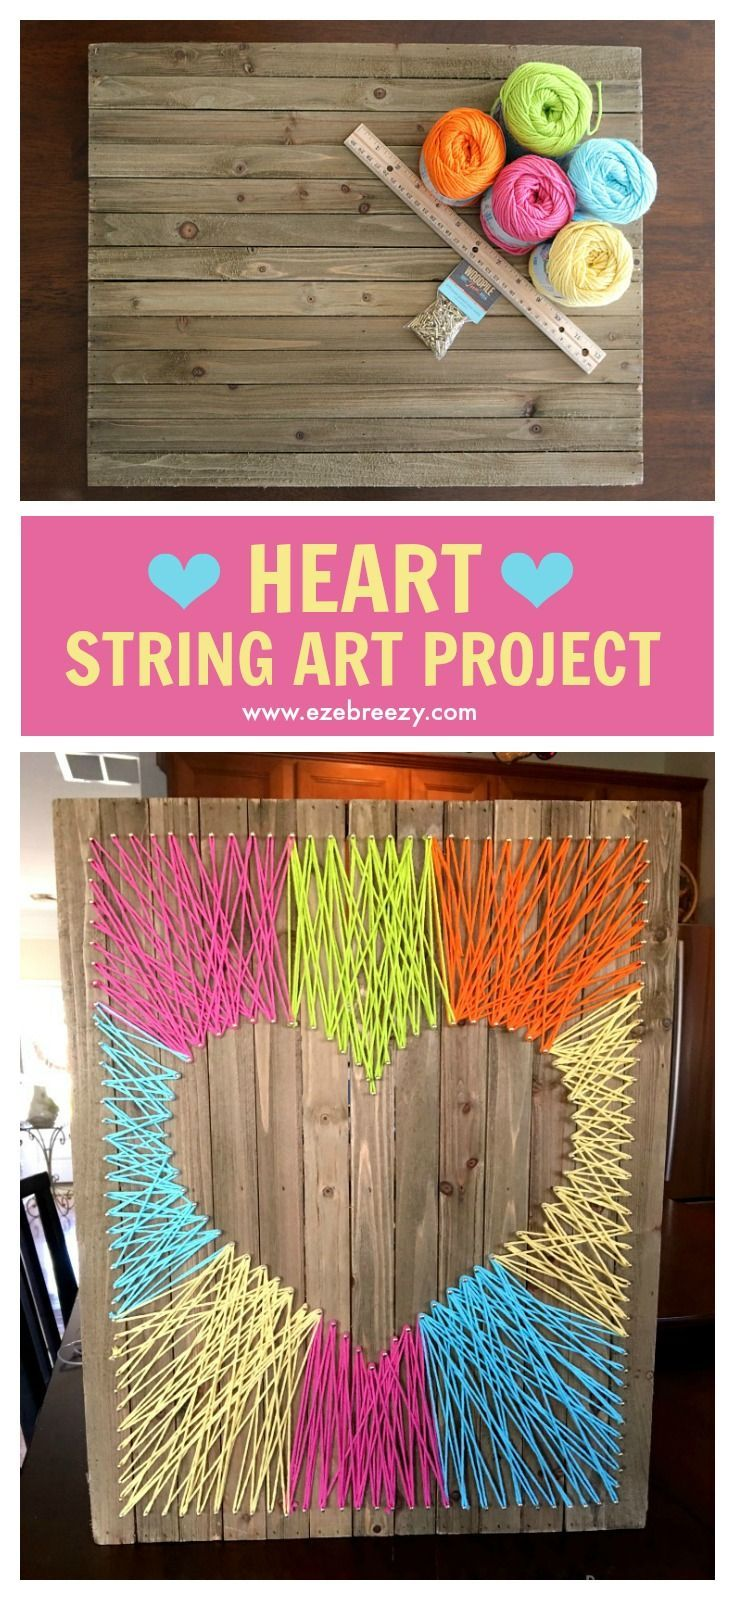 crafts string easy craft fun heart arts yarn diy pop crafting projects project perfect adult wall ezebreezy activities colorful creative